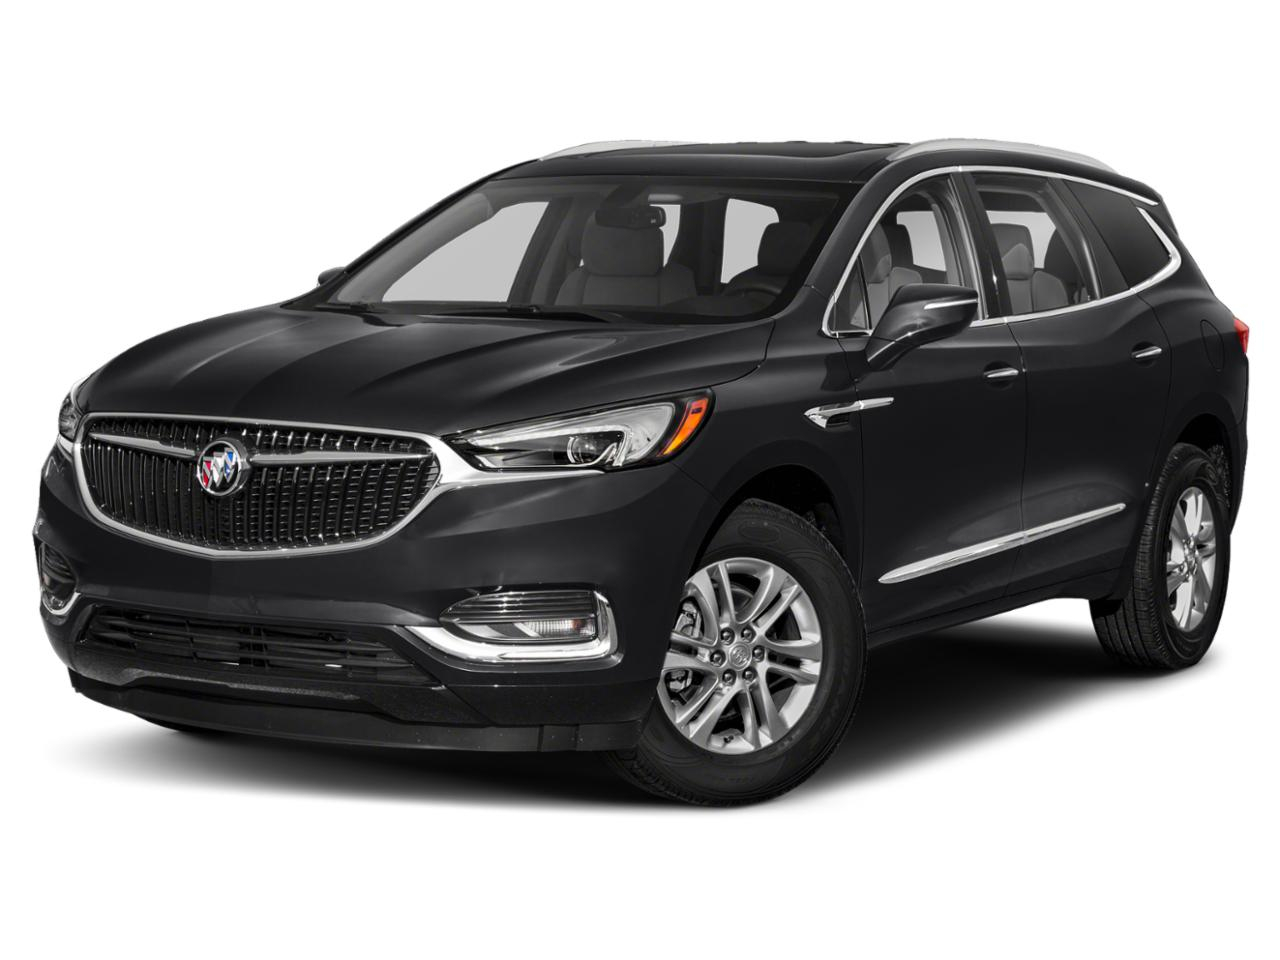 2020 Buick Enclave Avenir Awd In Norman, Ok | Stk# |Ferguson New 2021 Buick Enclave Avenir Awd Review, Accessories, Build